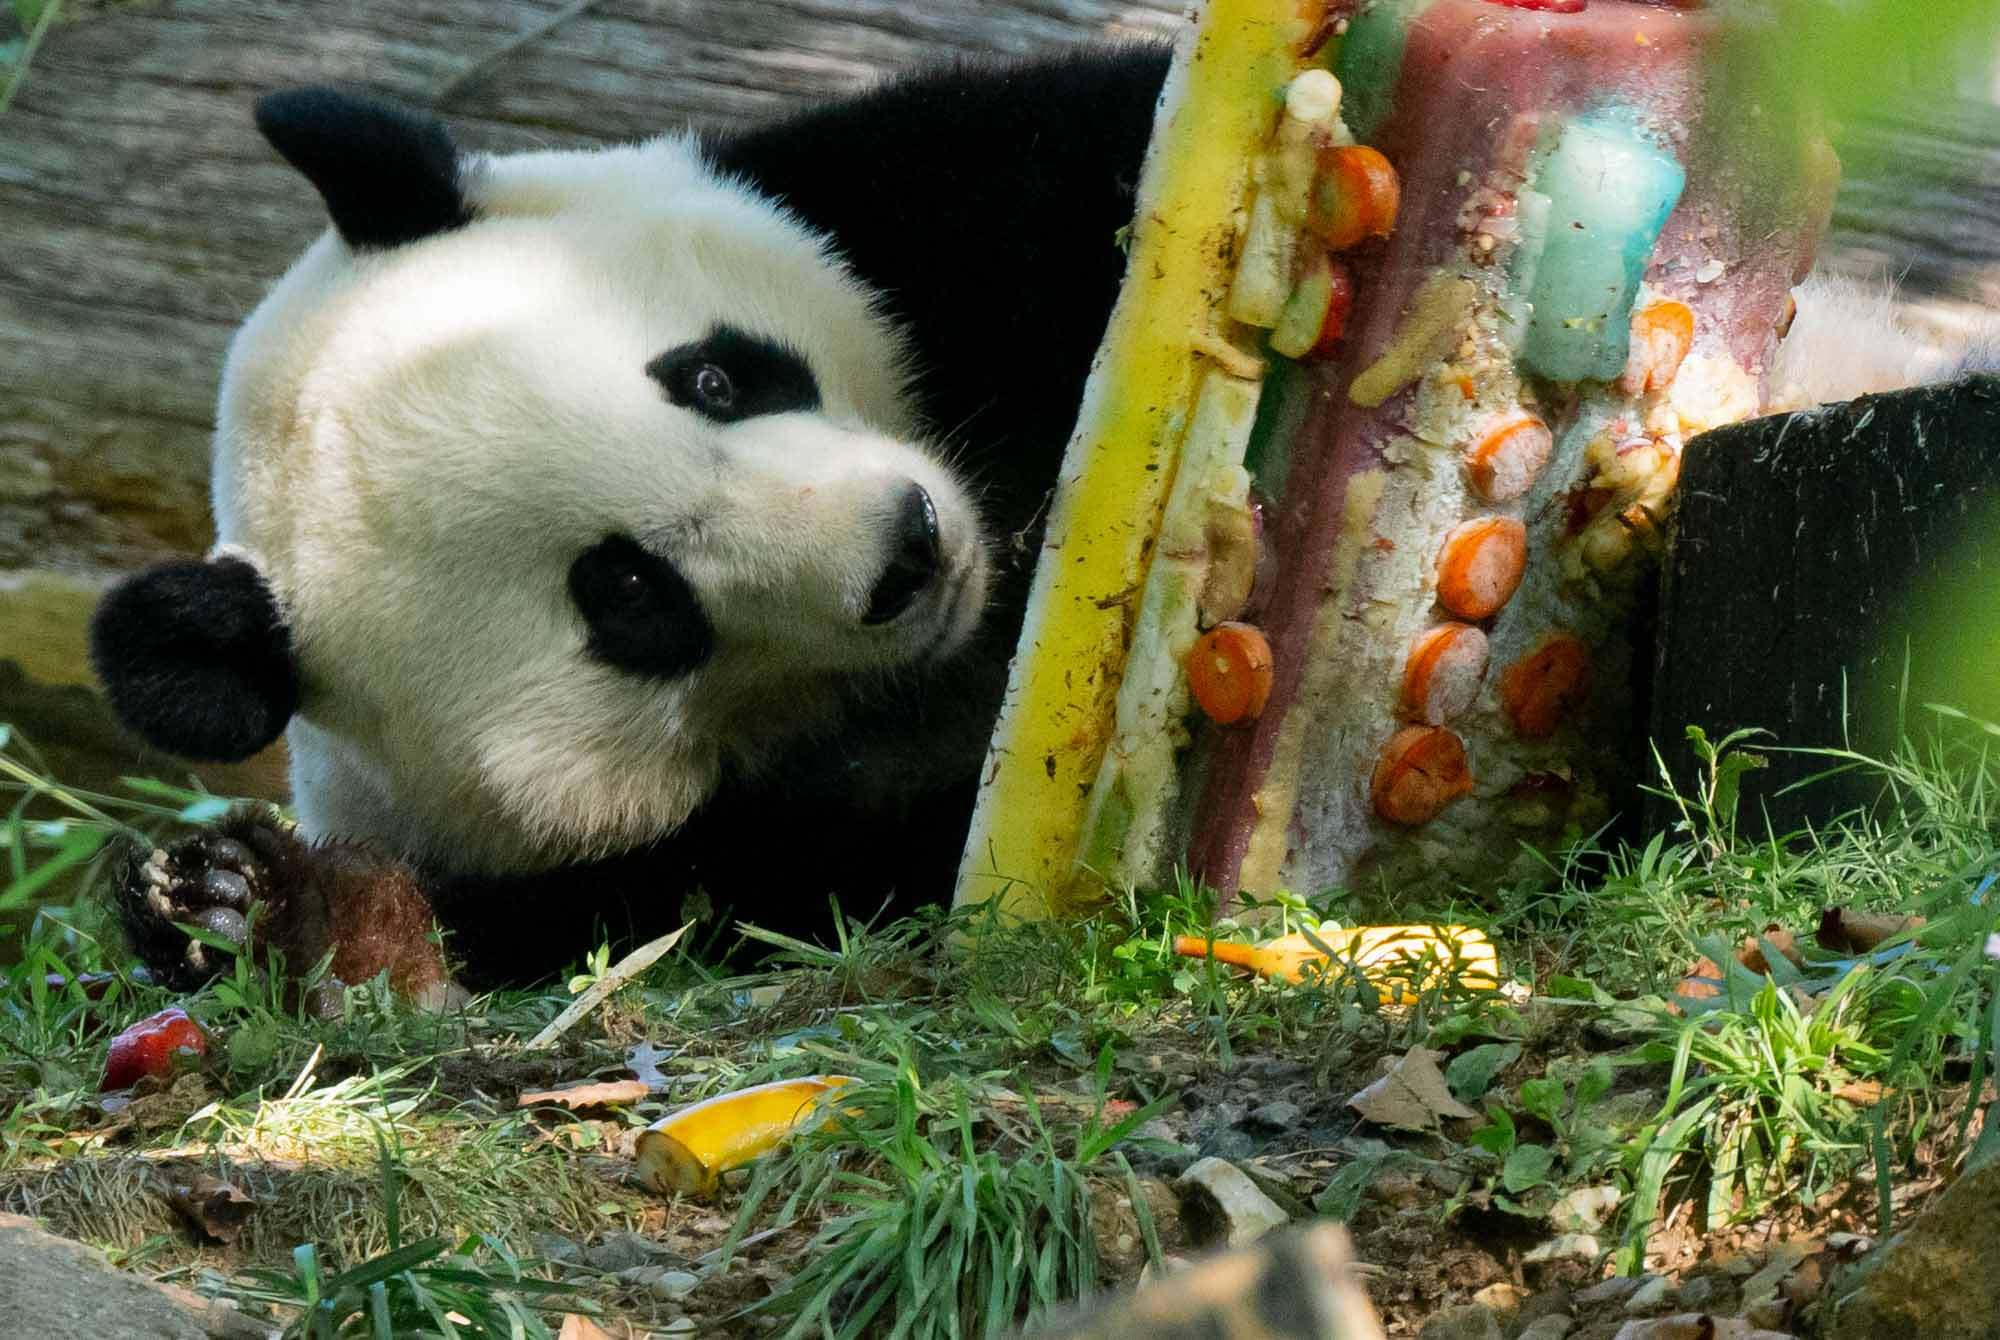 A bittersweet birthday for Bei Bei